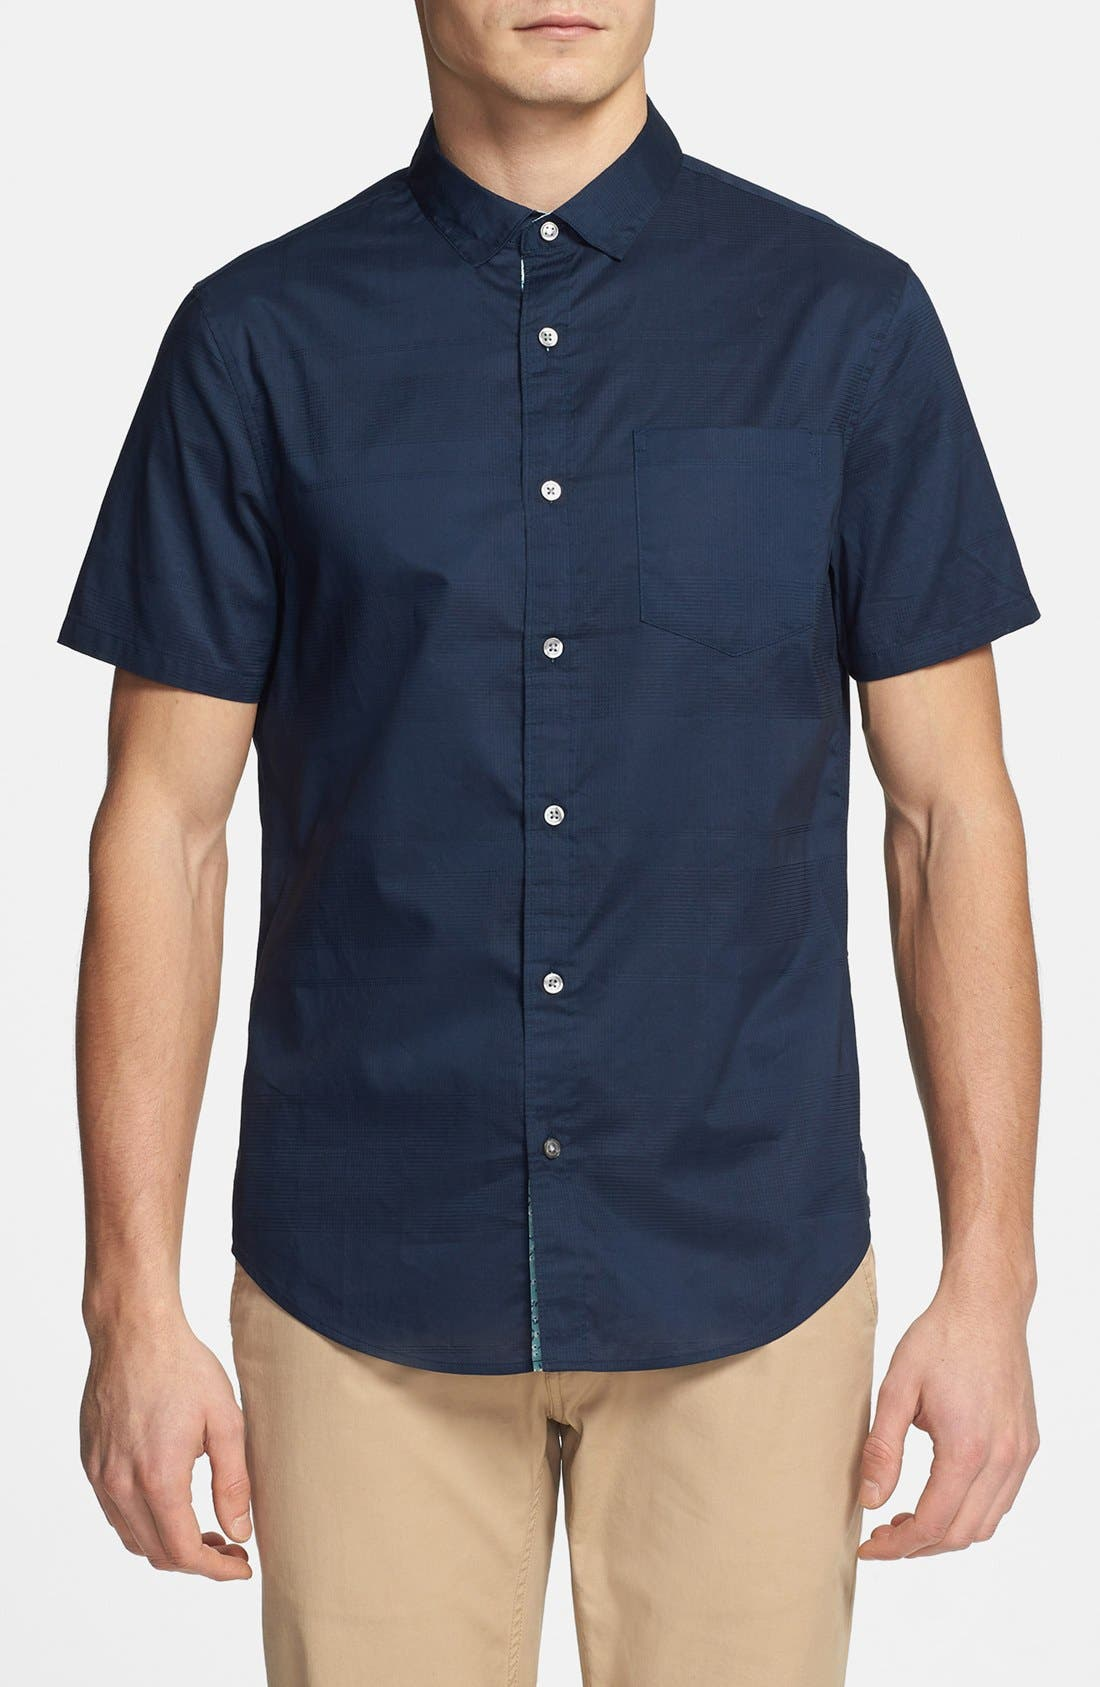 Main Image - Original Penguin Short Sleeve Cotton Sport Shirt